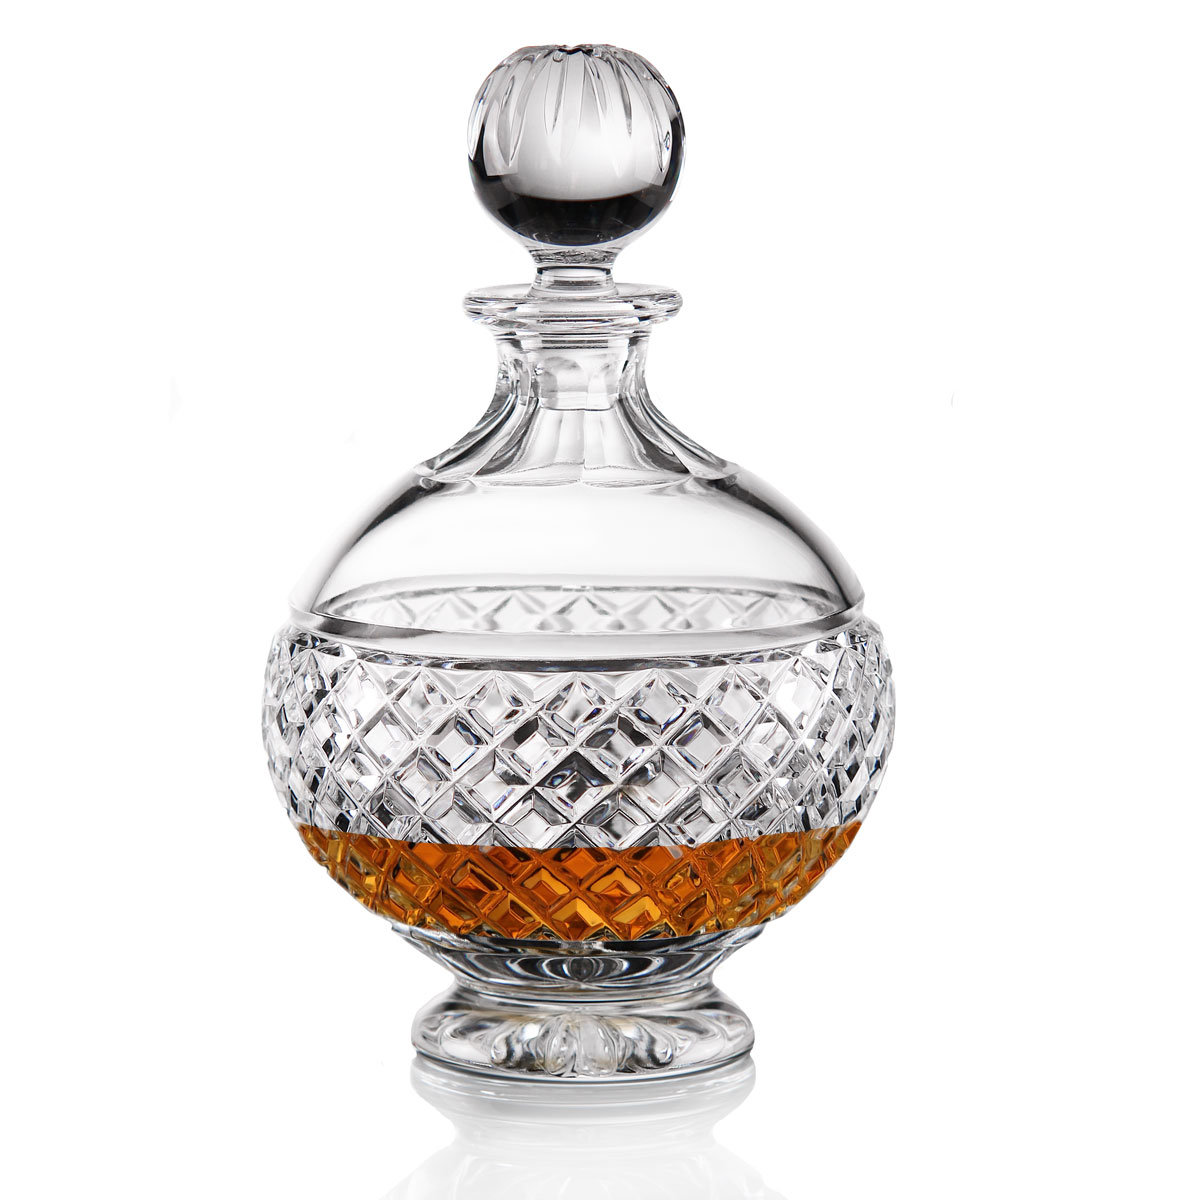 Cashs Ireland, Cooper Round Crystal Decanter with Stopper